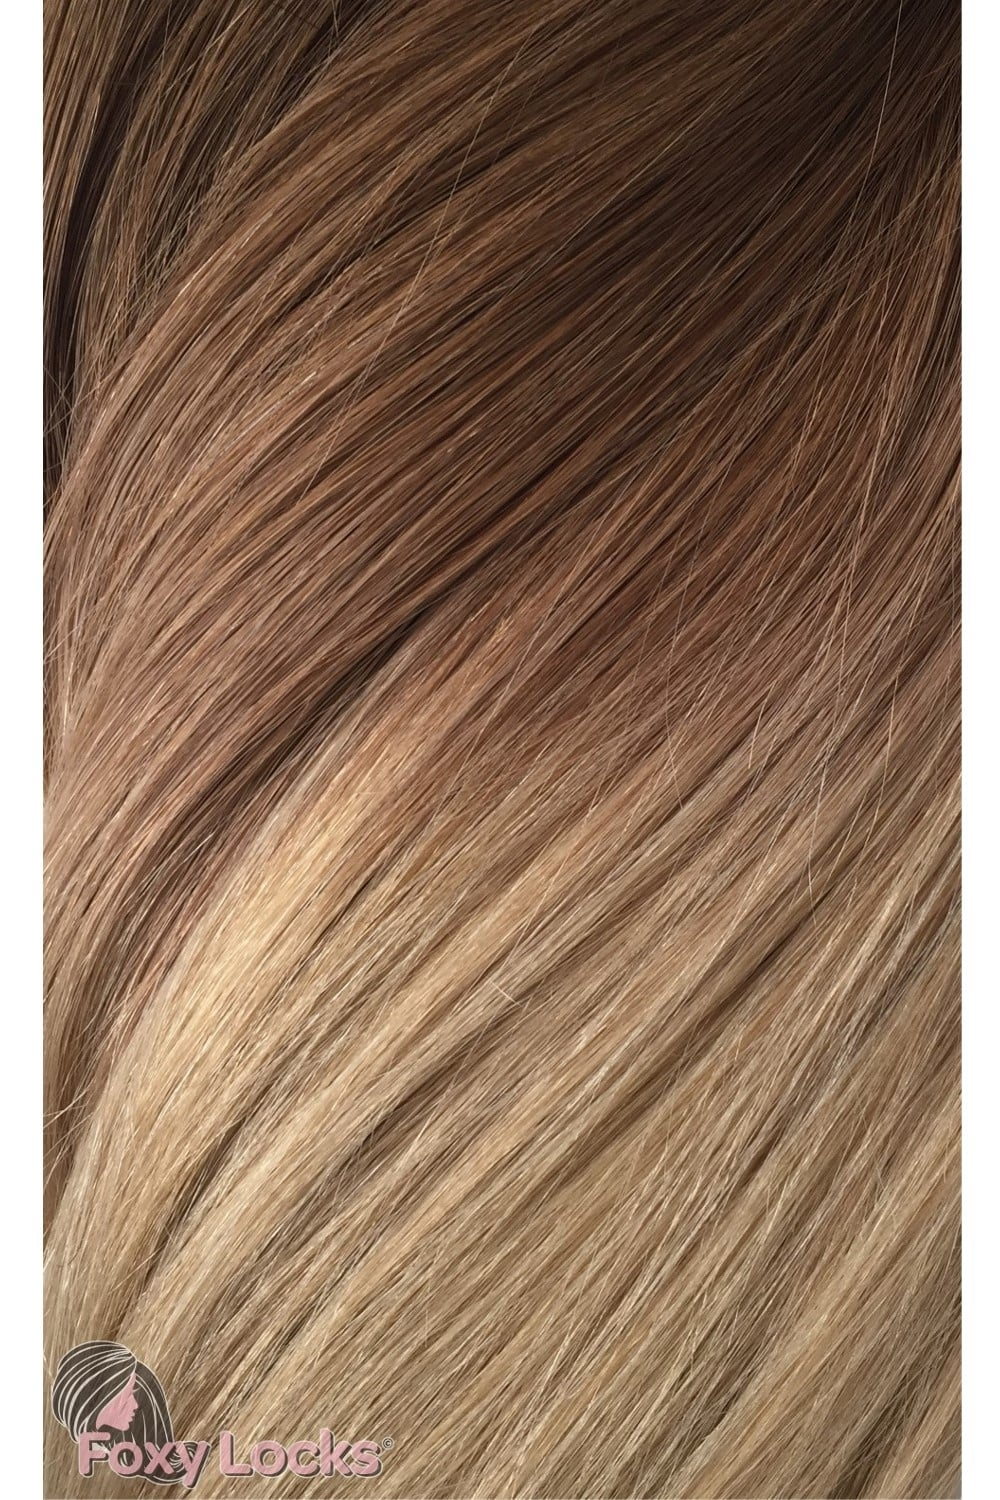 Honey Spice Ombre Deluxe 20 Clip In Human Hair Extensions 165g